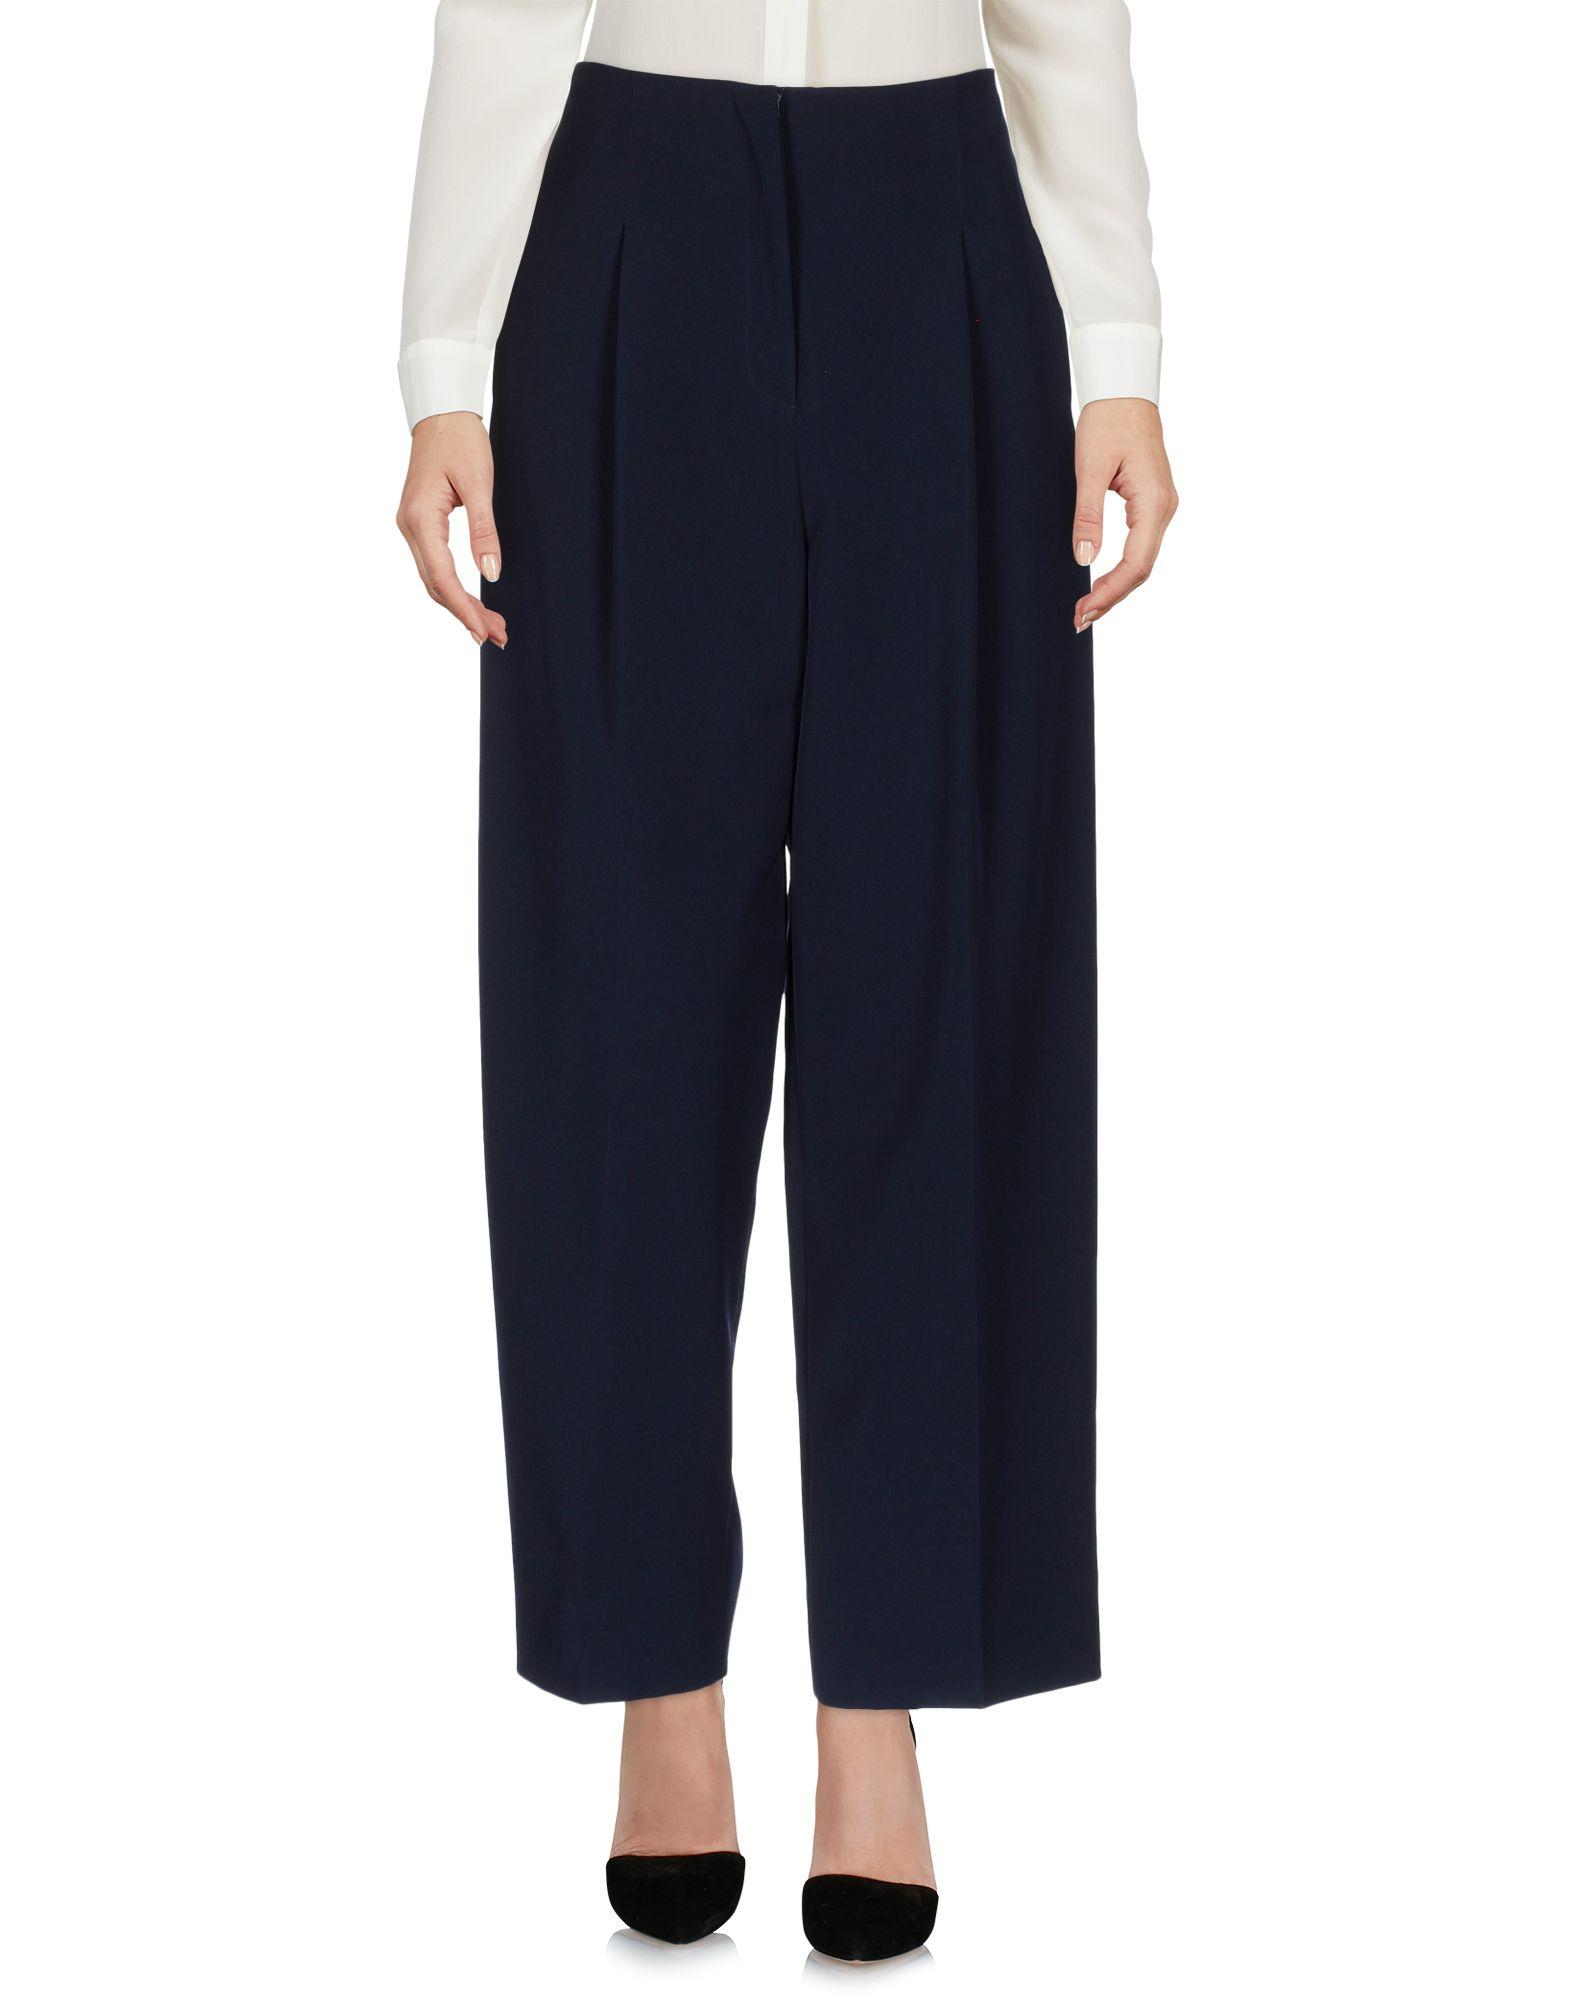 Parden's Casual Pants In Dark Blue